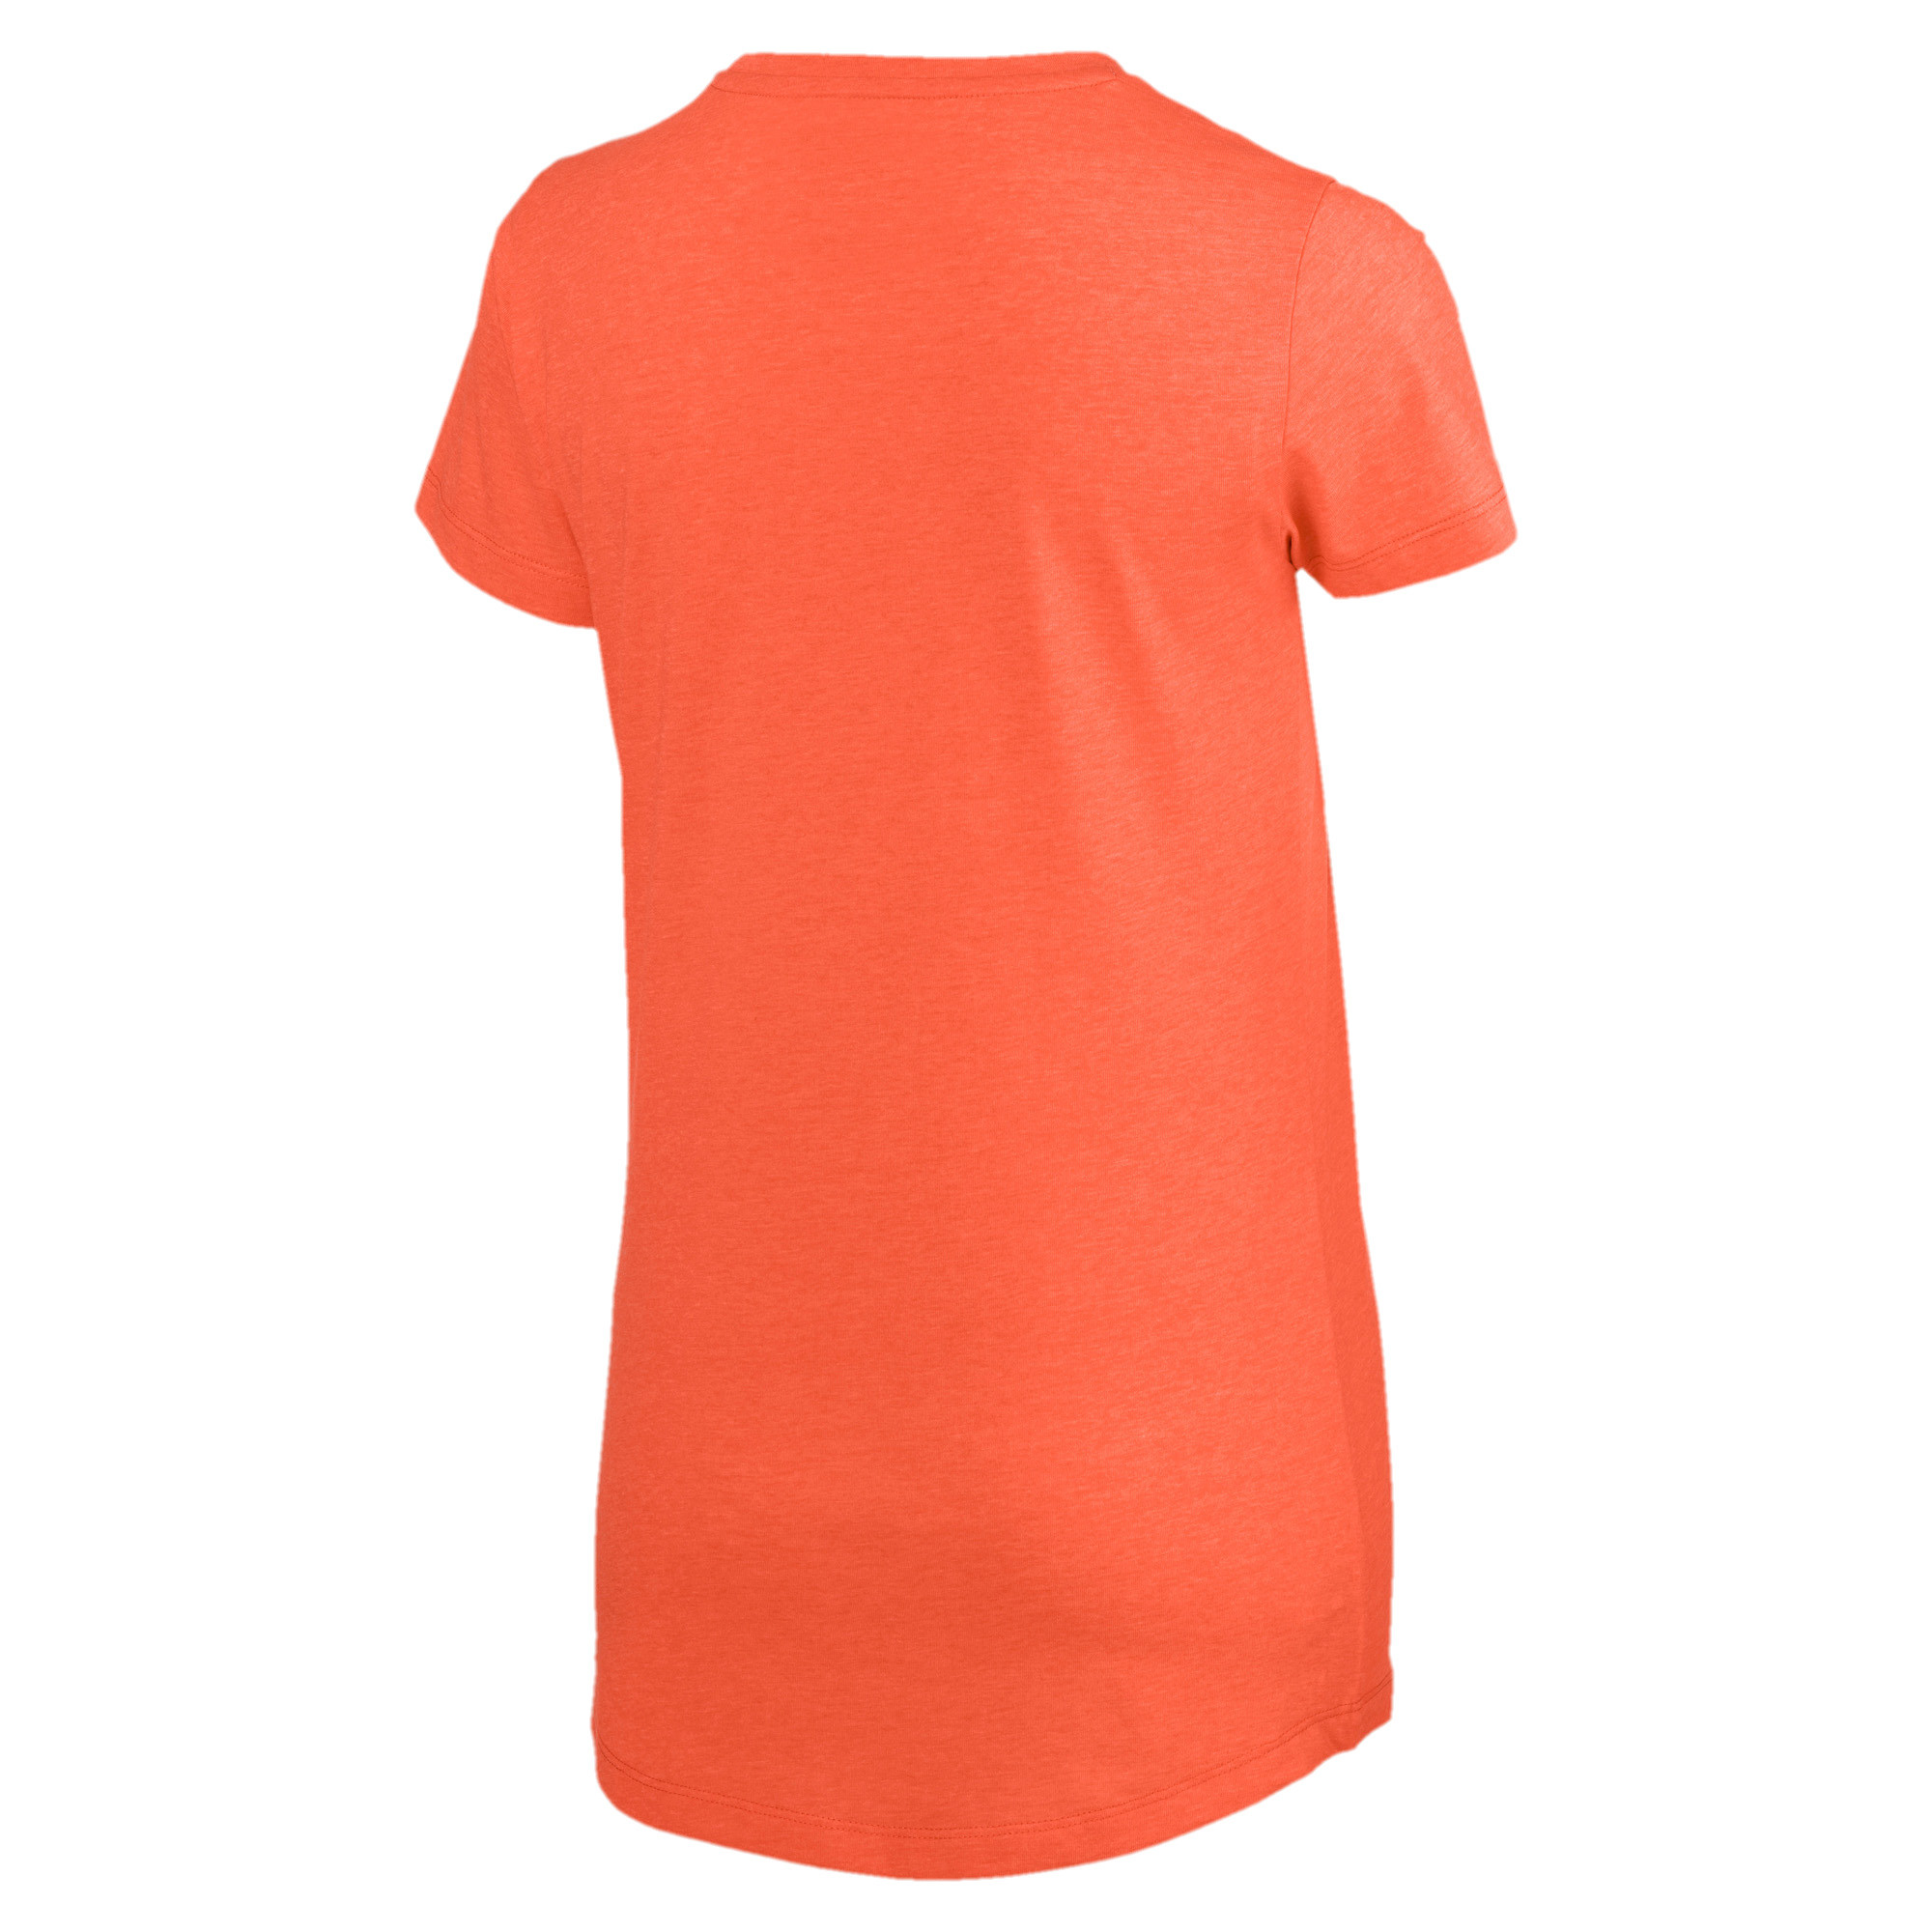 PUMA-Essentials-Women-039-s-Heather-Tee-Women-Tee-Basics thumbnail 21